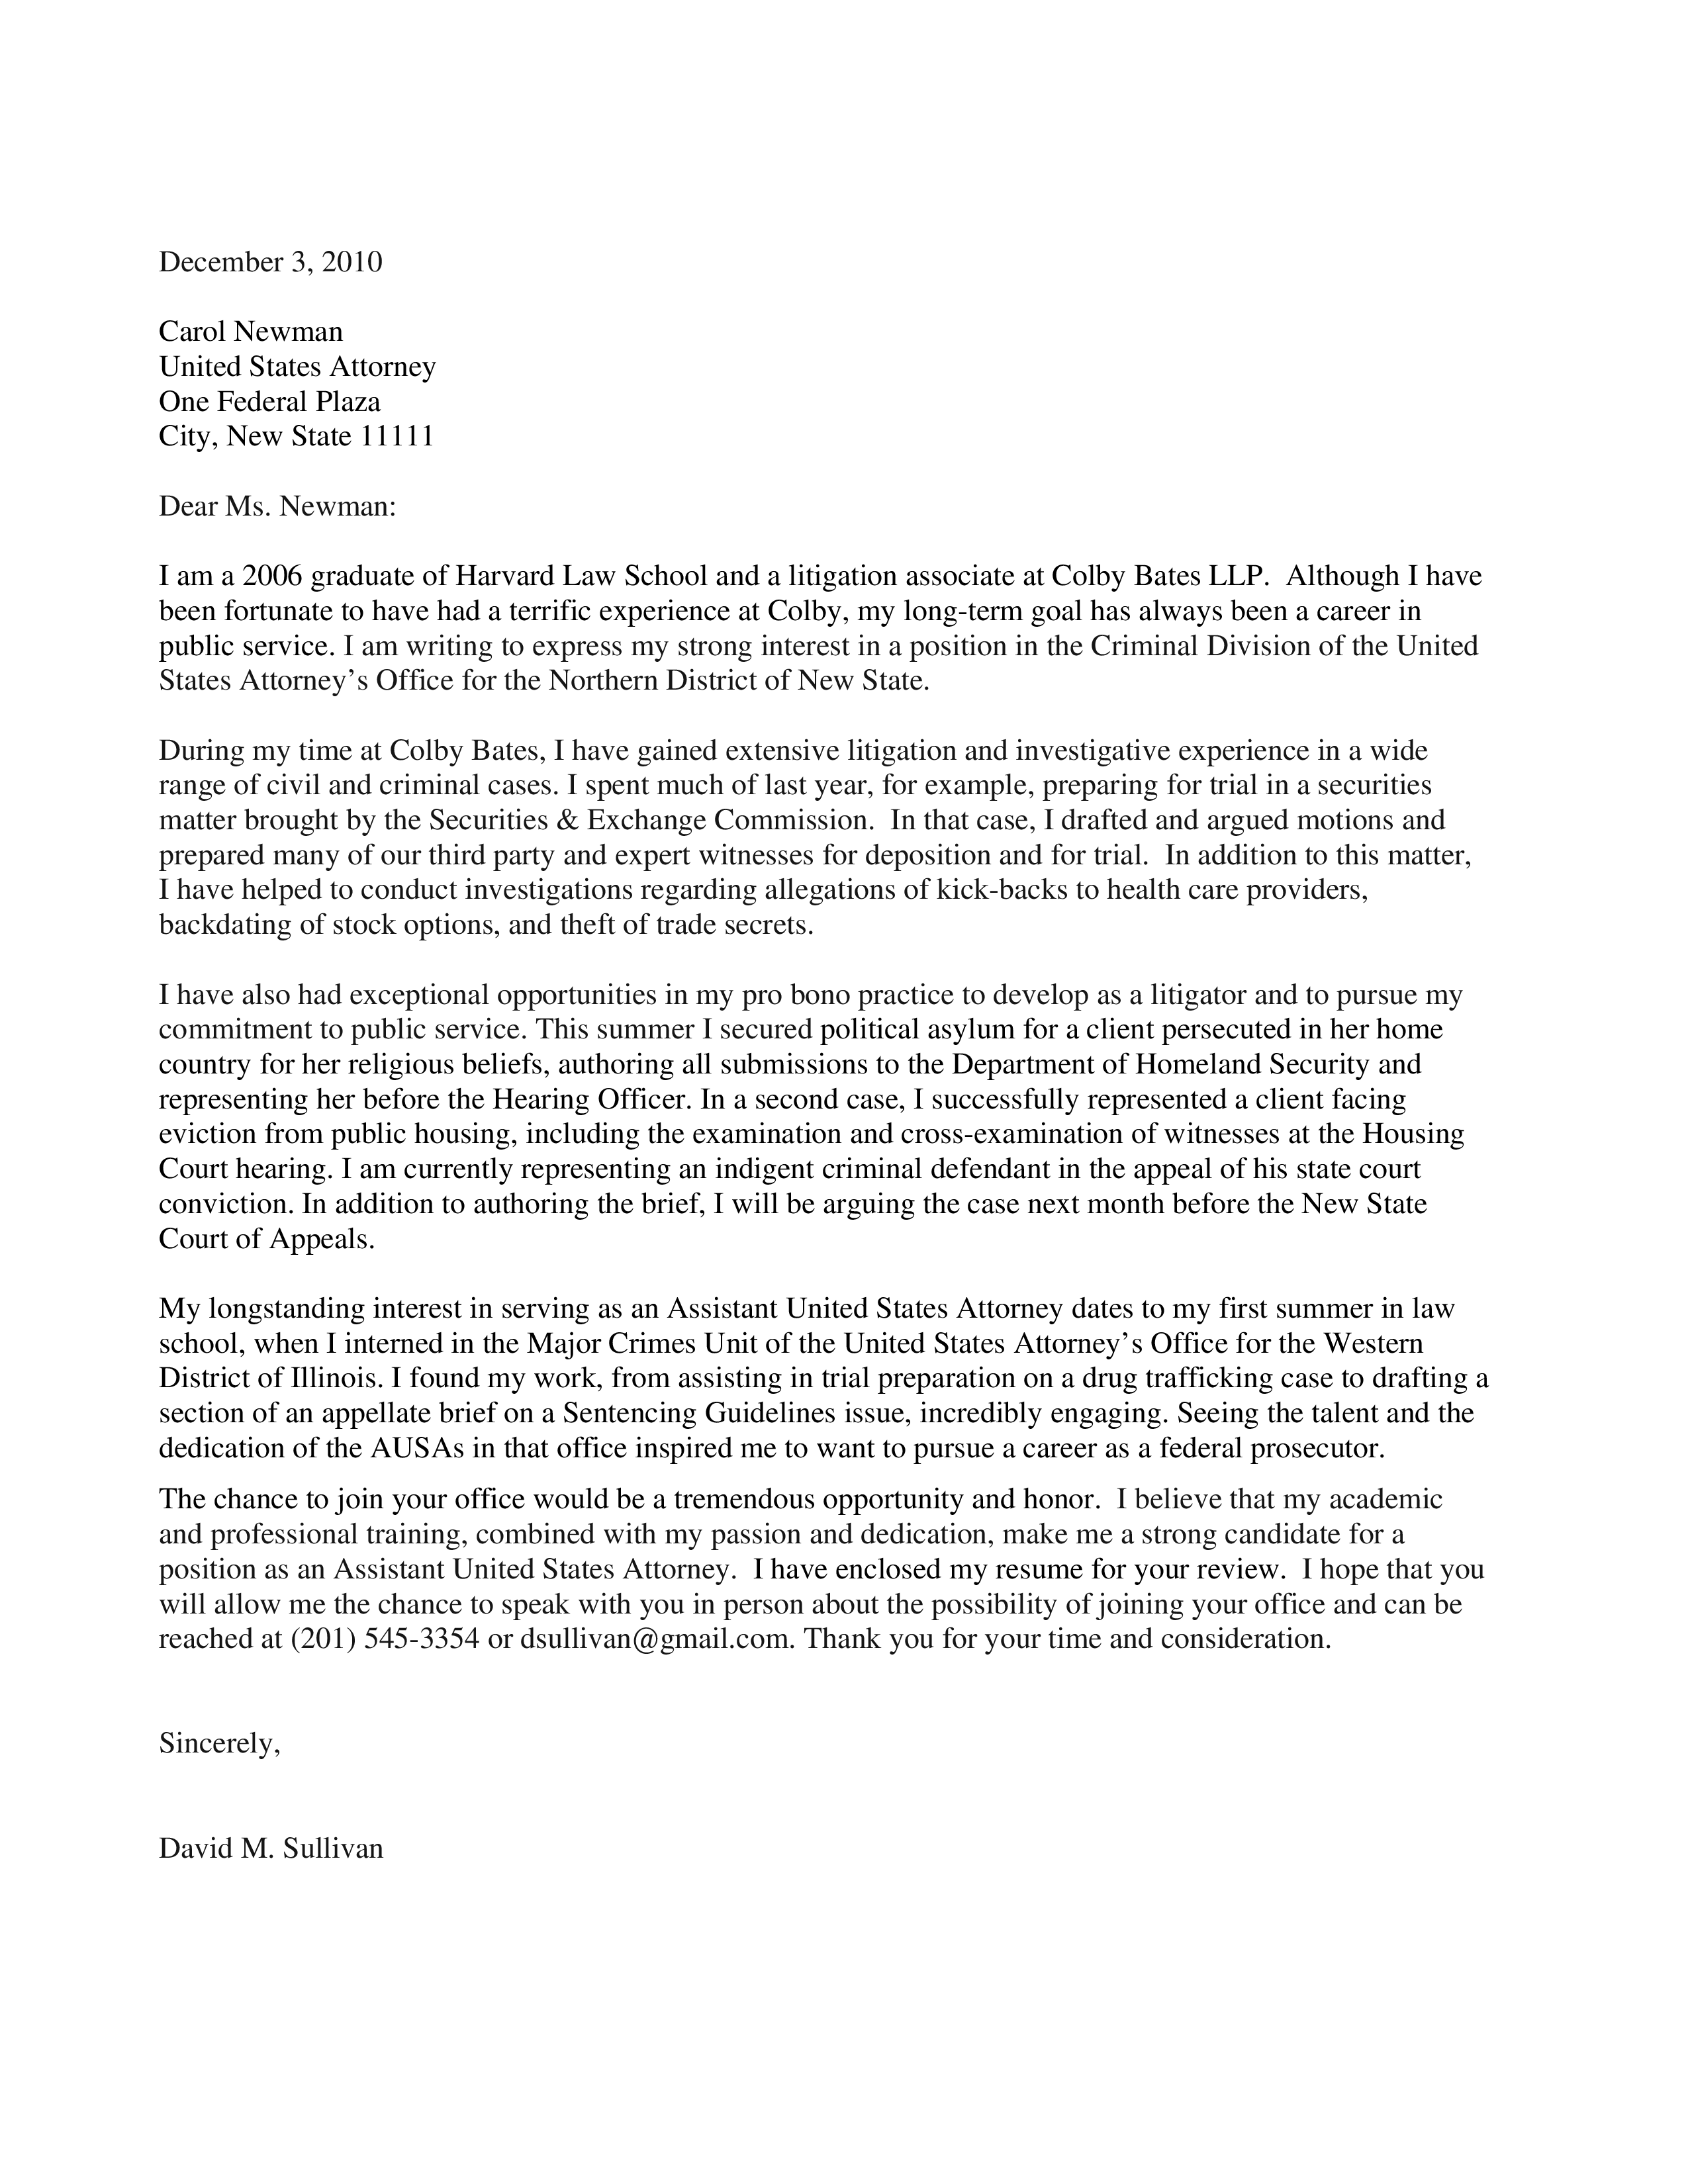 Graduate Law Student Cover Letter | Templates at ...